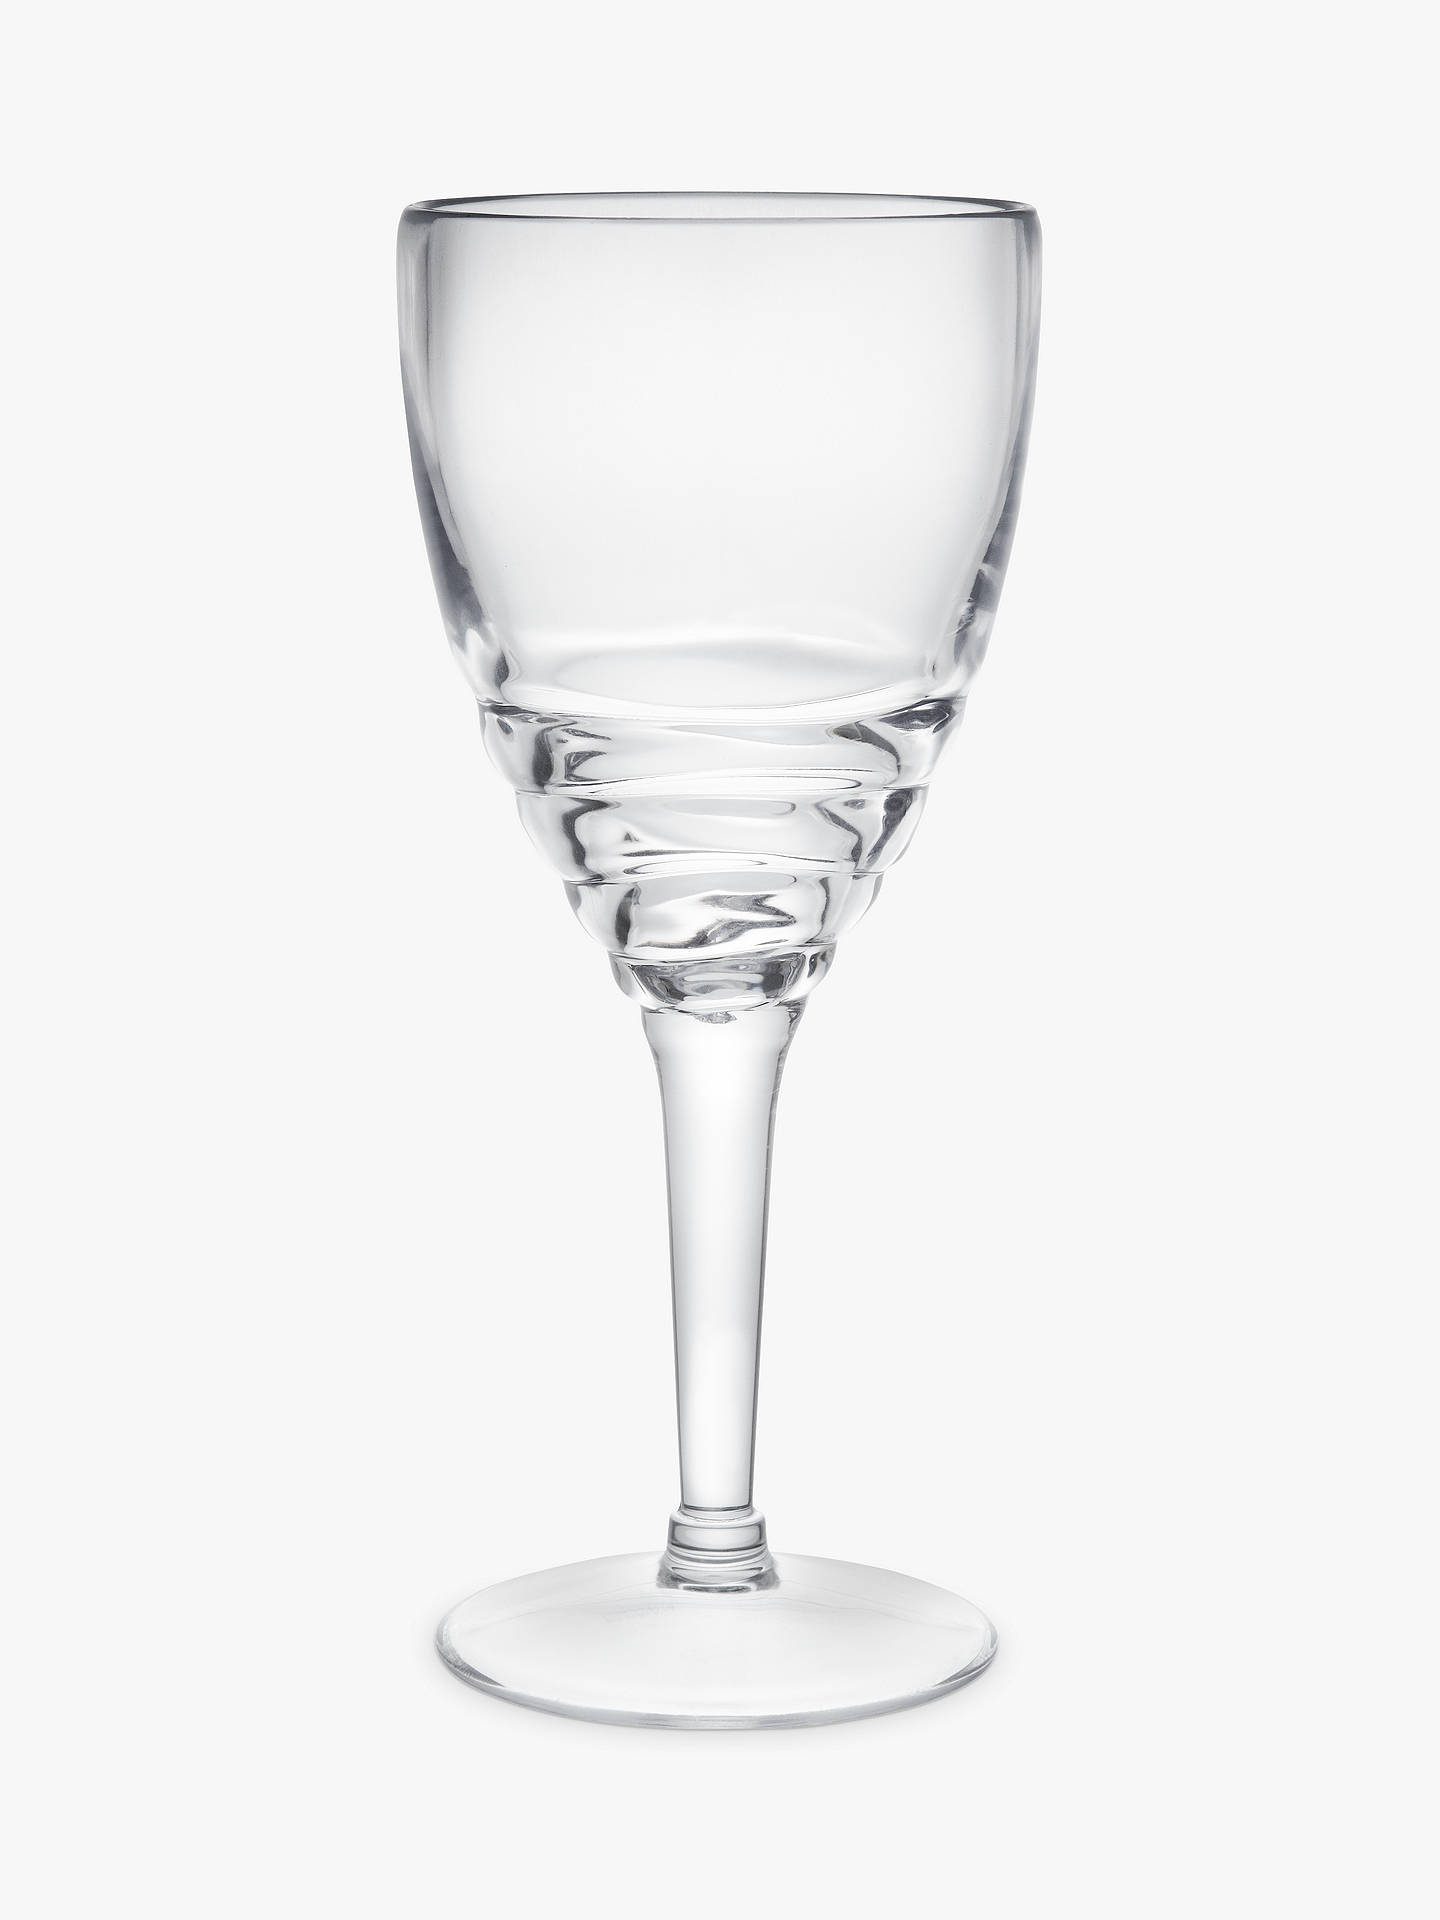 BuyJohn Lewis & Partners Wave Acrylic Picnic Wine Glass Online at johnlewis.com